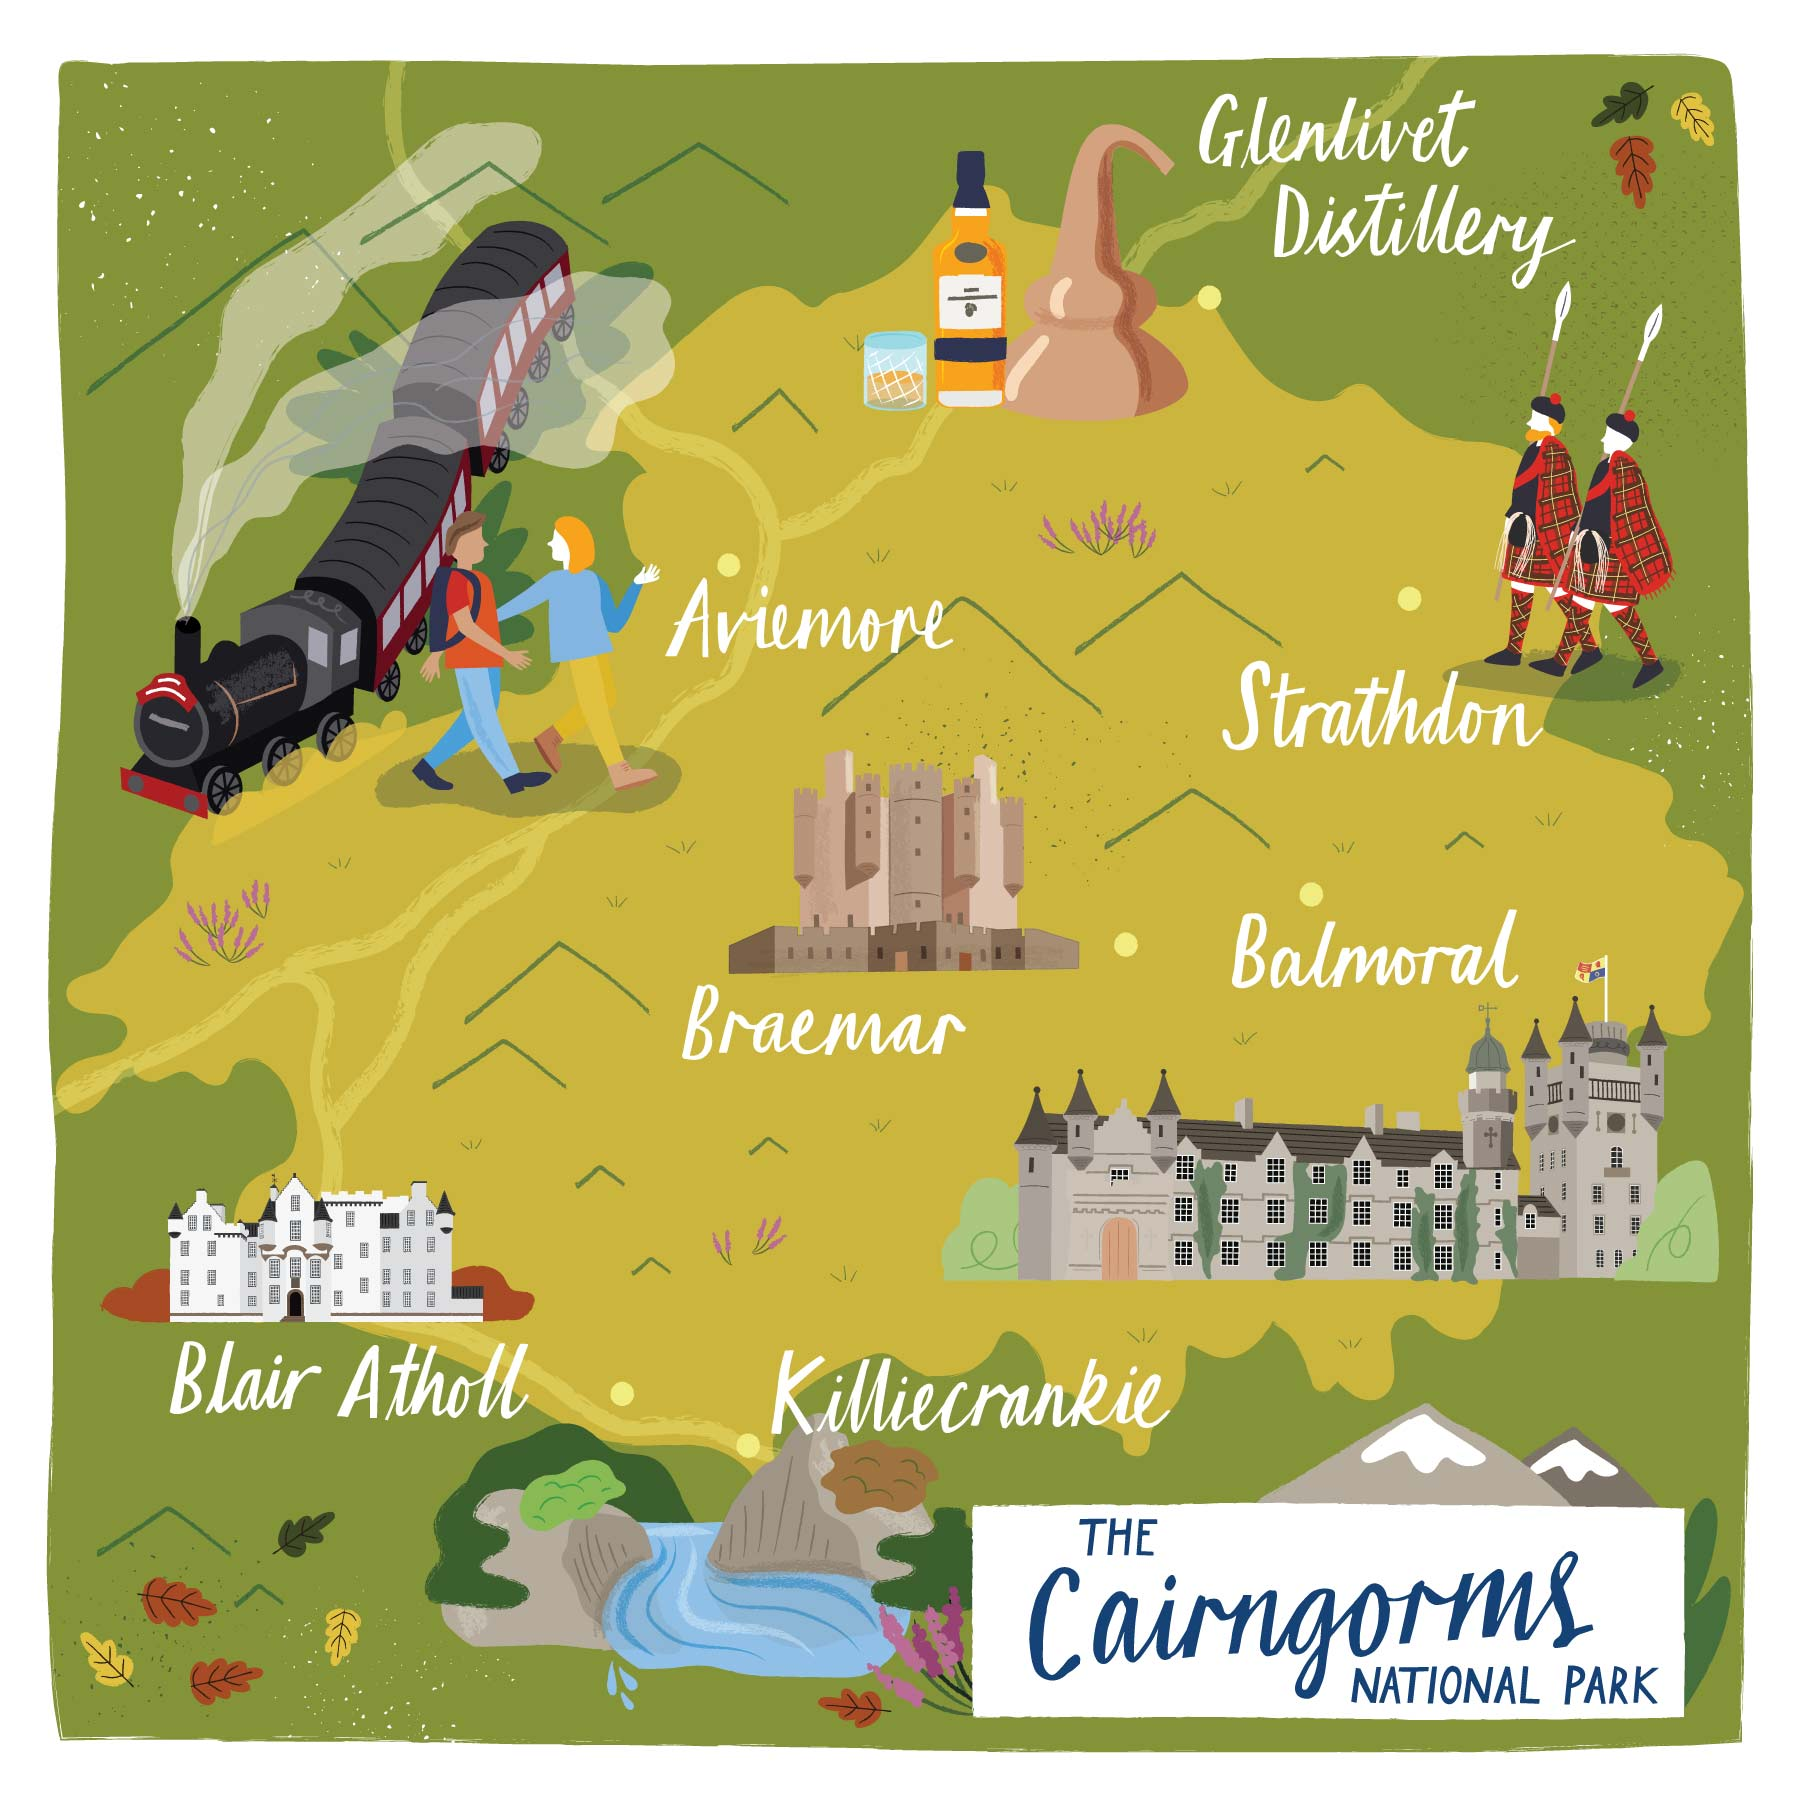 A map of the Cairngorms National Park by Elly Jahnz for Discover Britain